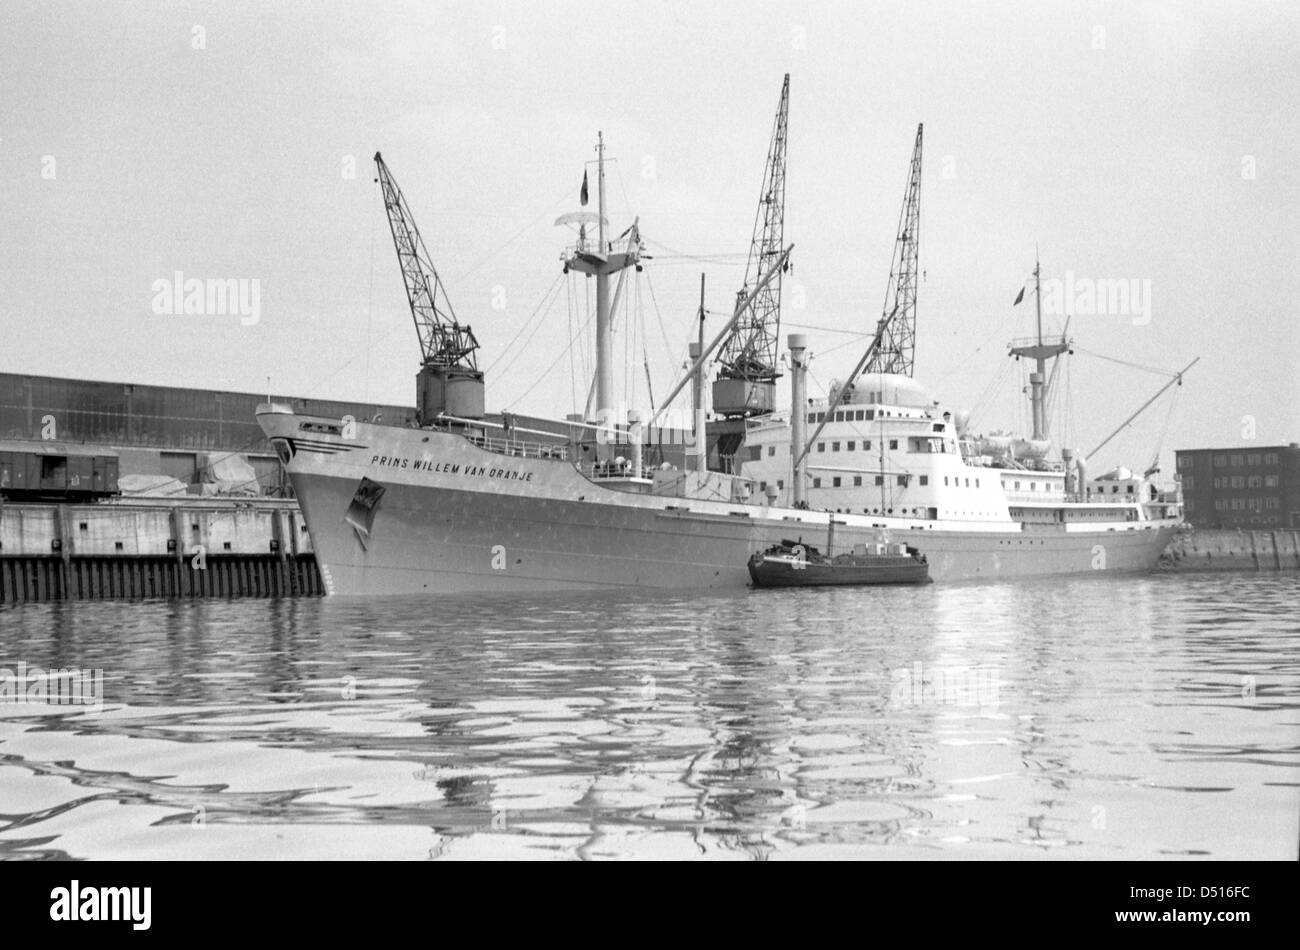 Hamburg, Germany, cargo and passenger ship Prins Willem van Oranje at a quay in the harbor Stock Photo